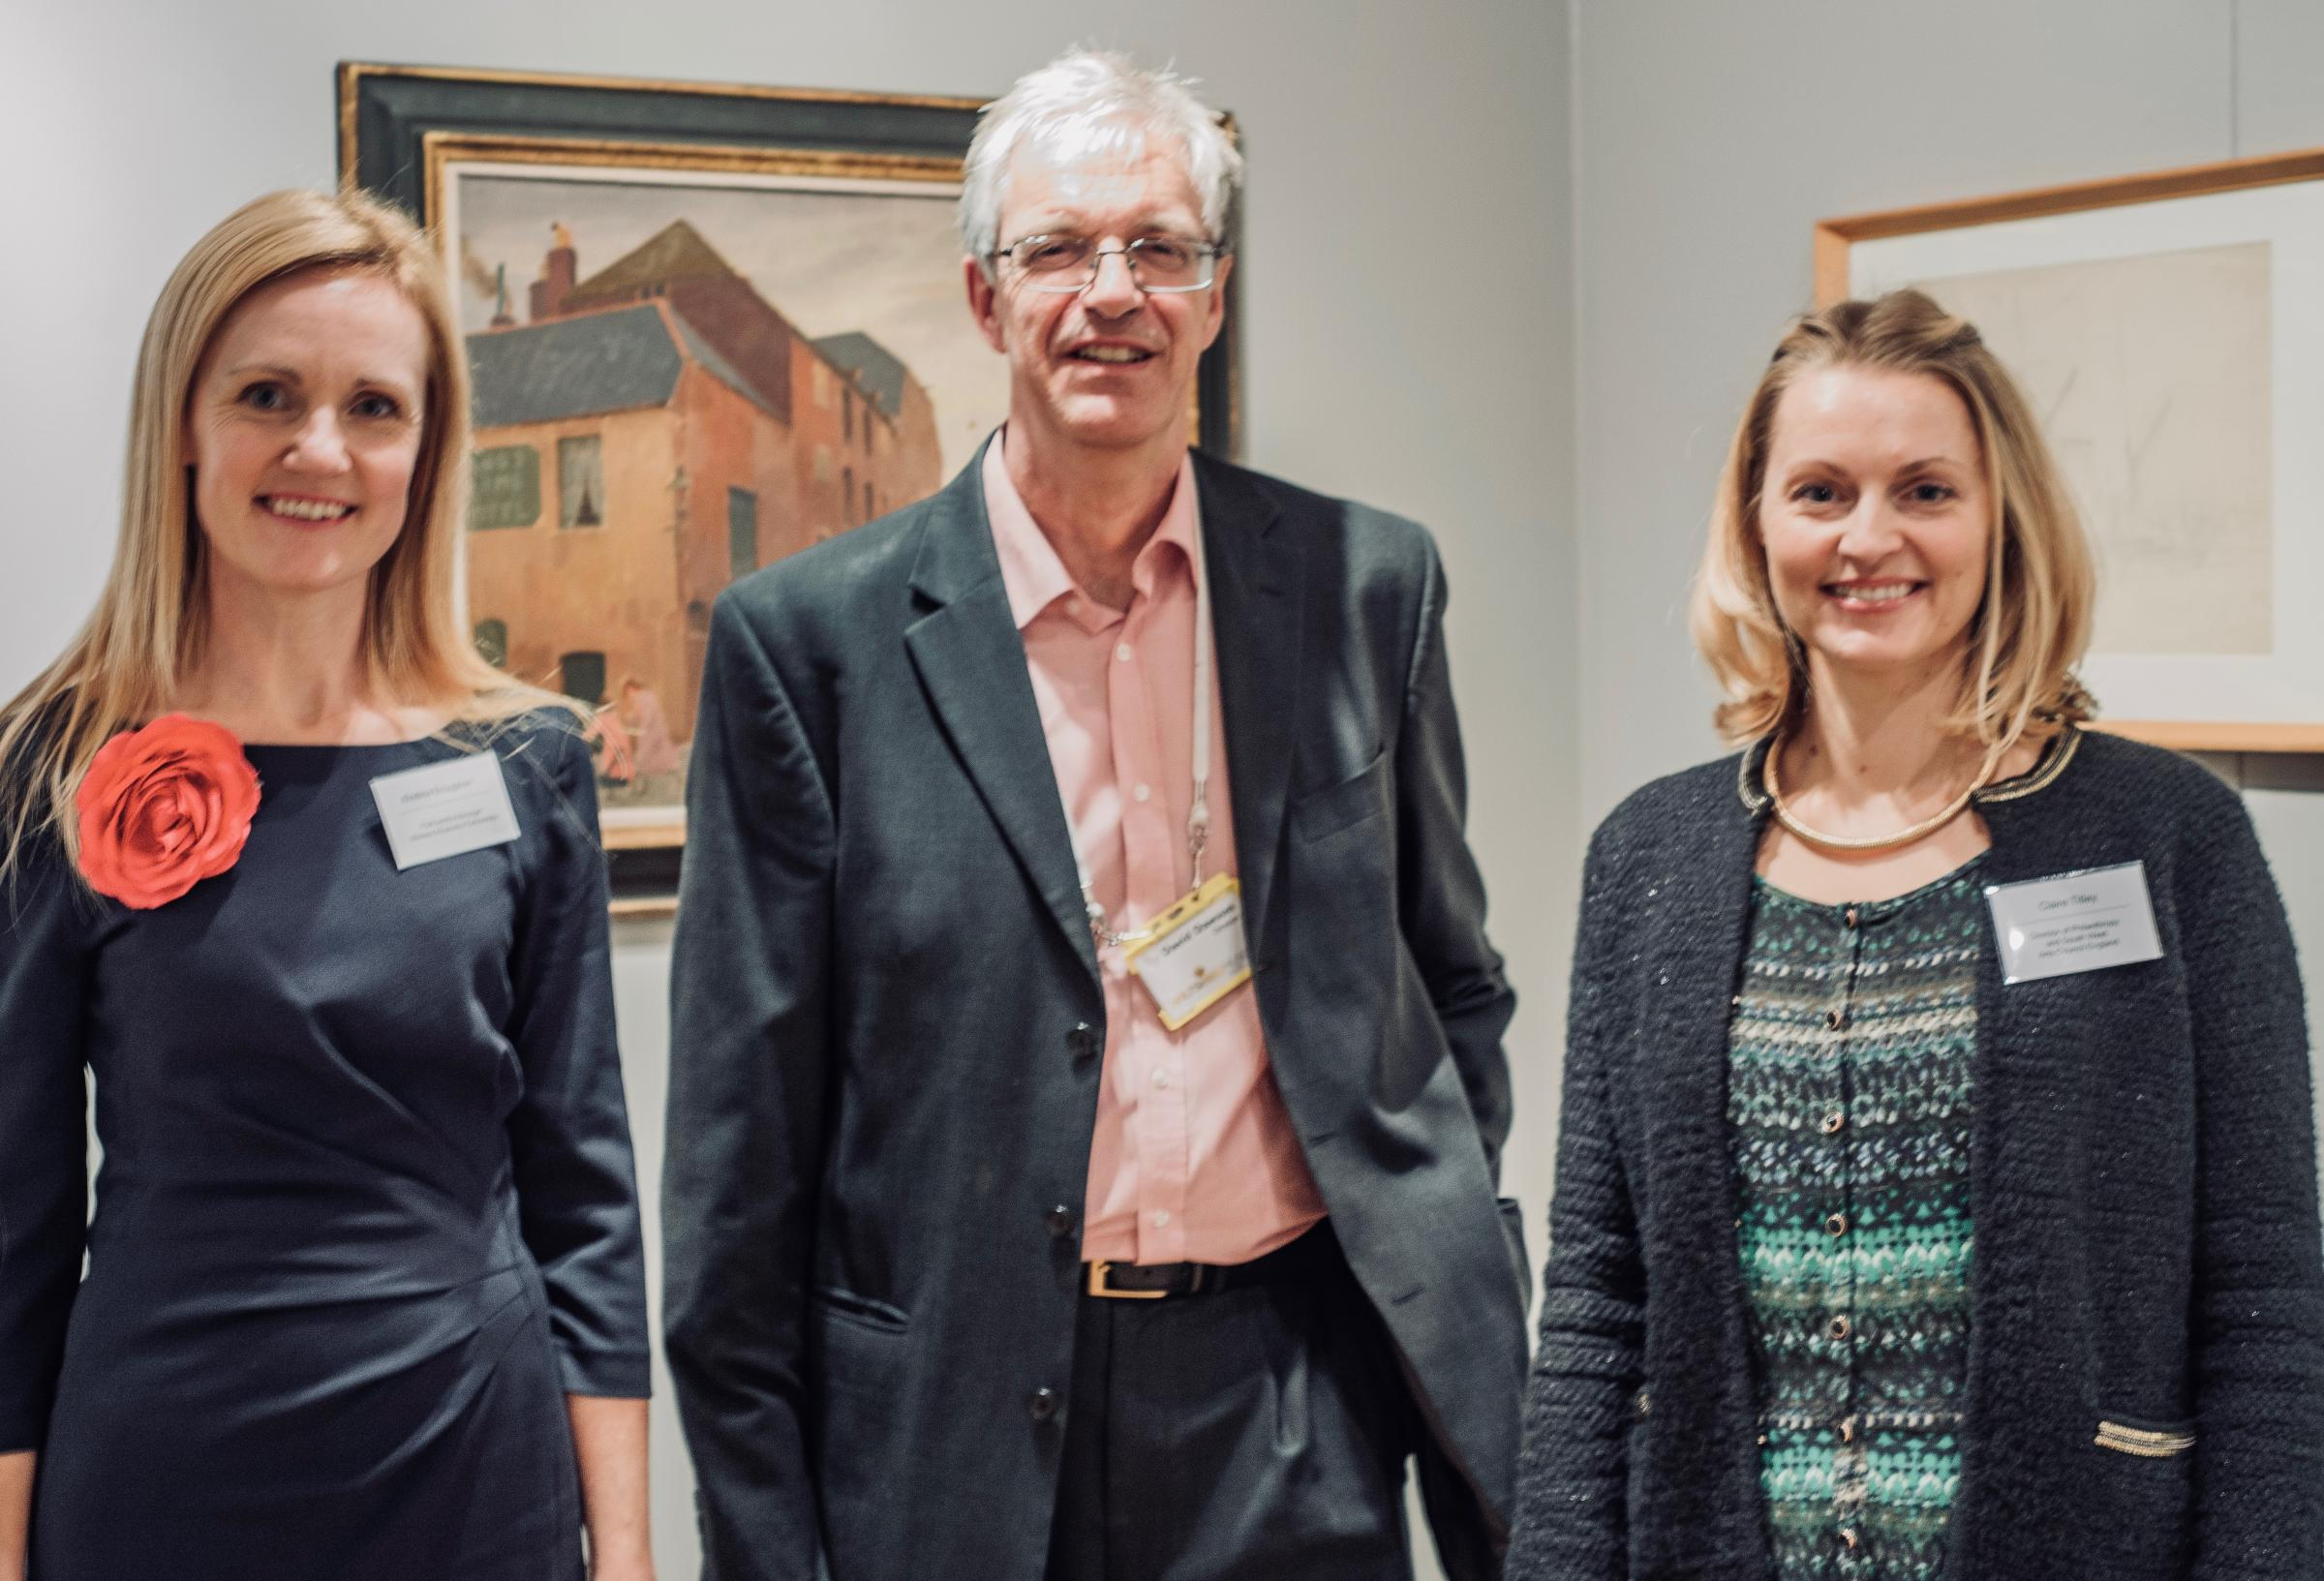 Picture shows: Left to right: Kristina Broughton, Wessex Museums Programme Manager; David Dawson, Director, Wiltshire Museum and Clare Titley, Director of Philanthropy and South West, Arts Council England